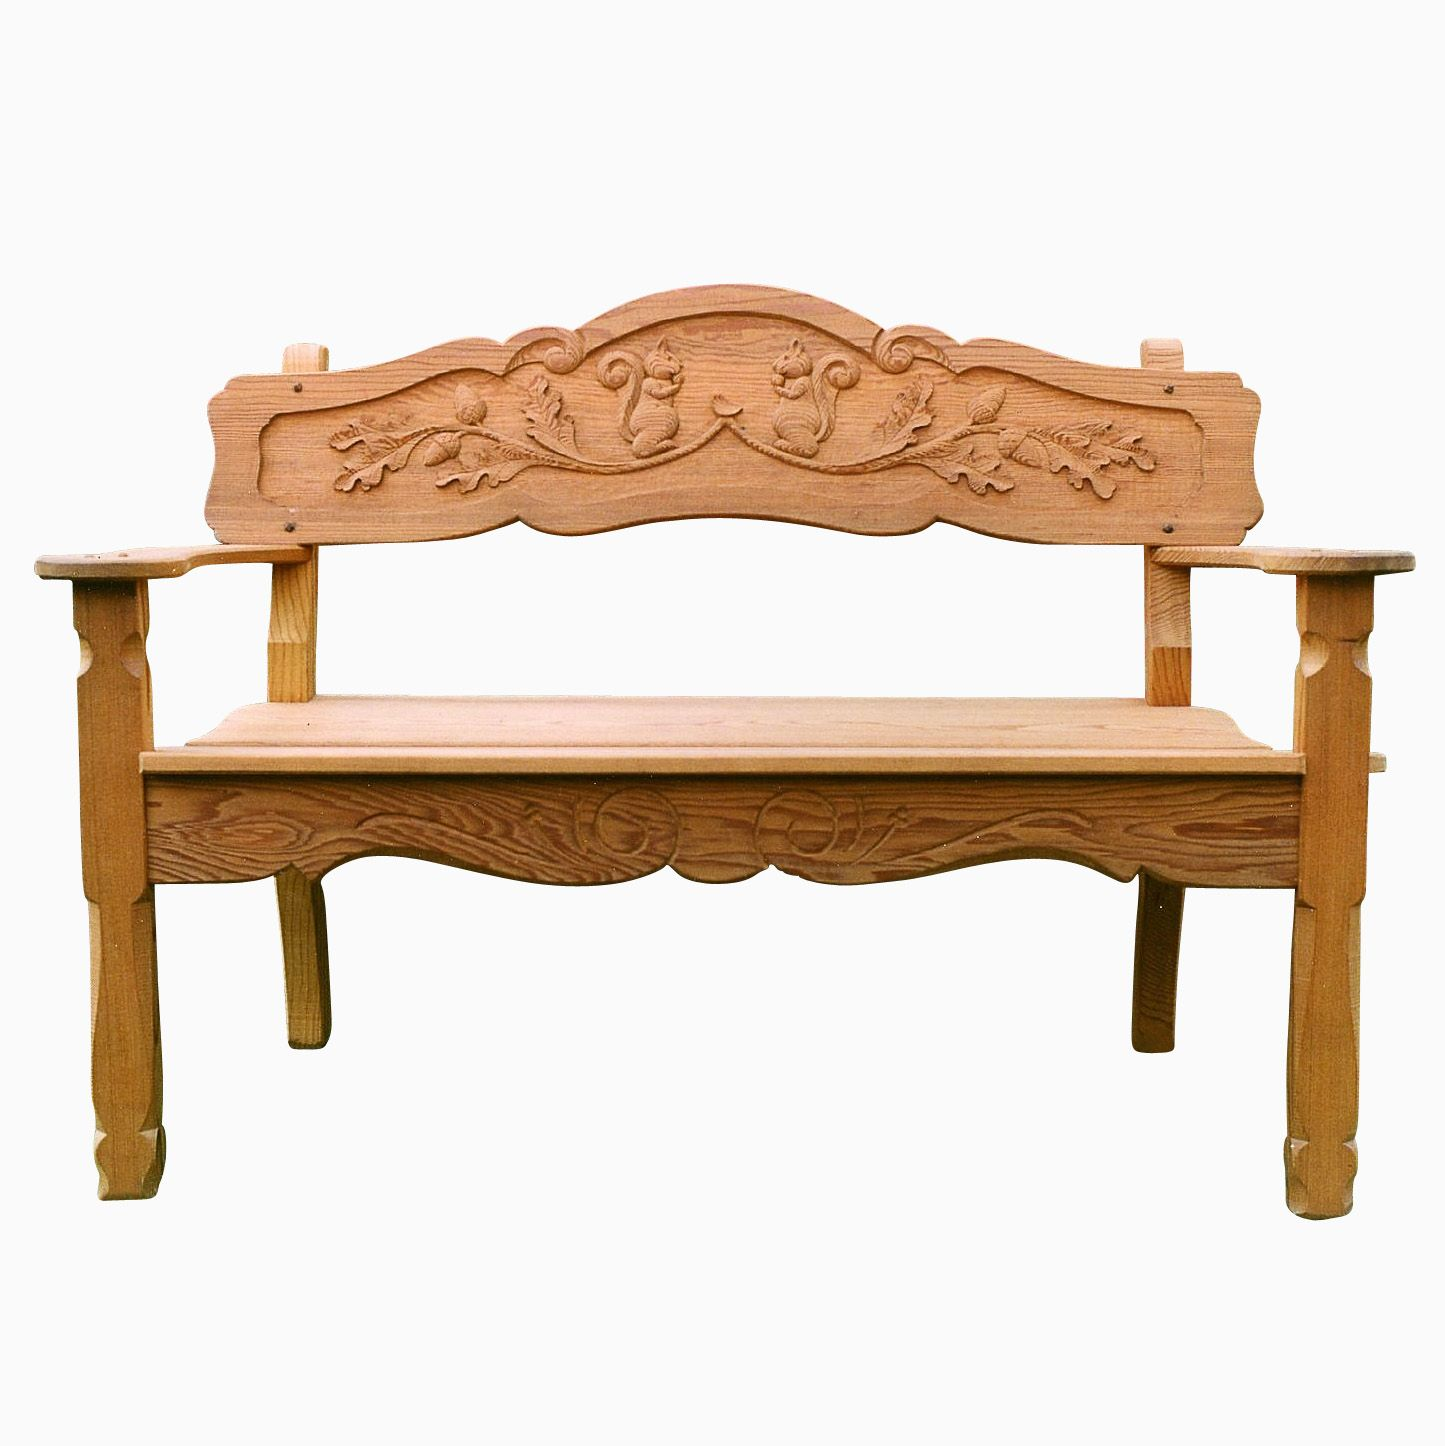 custom made handcarved cyprus or mahogany garden bench